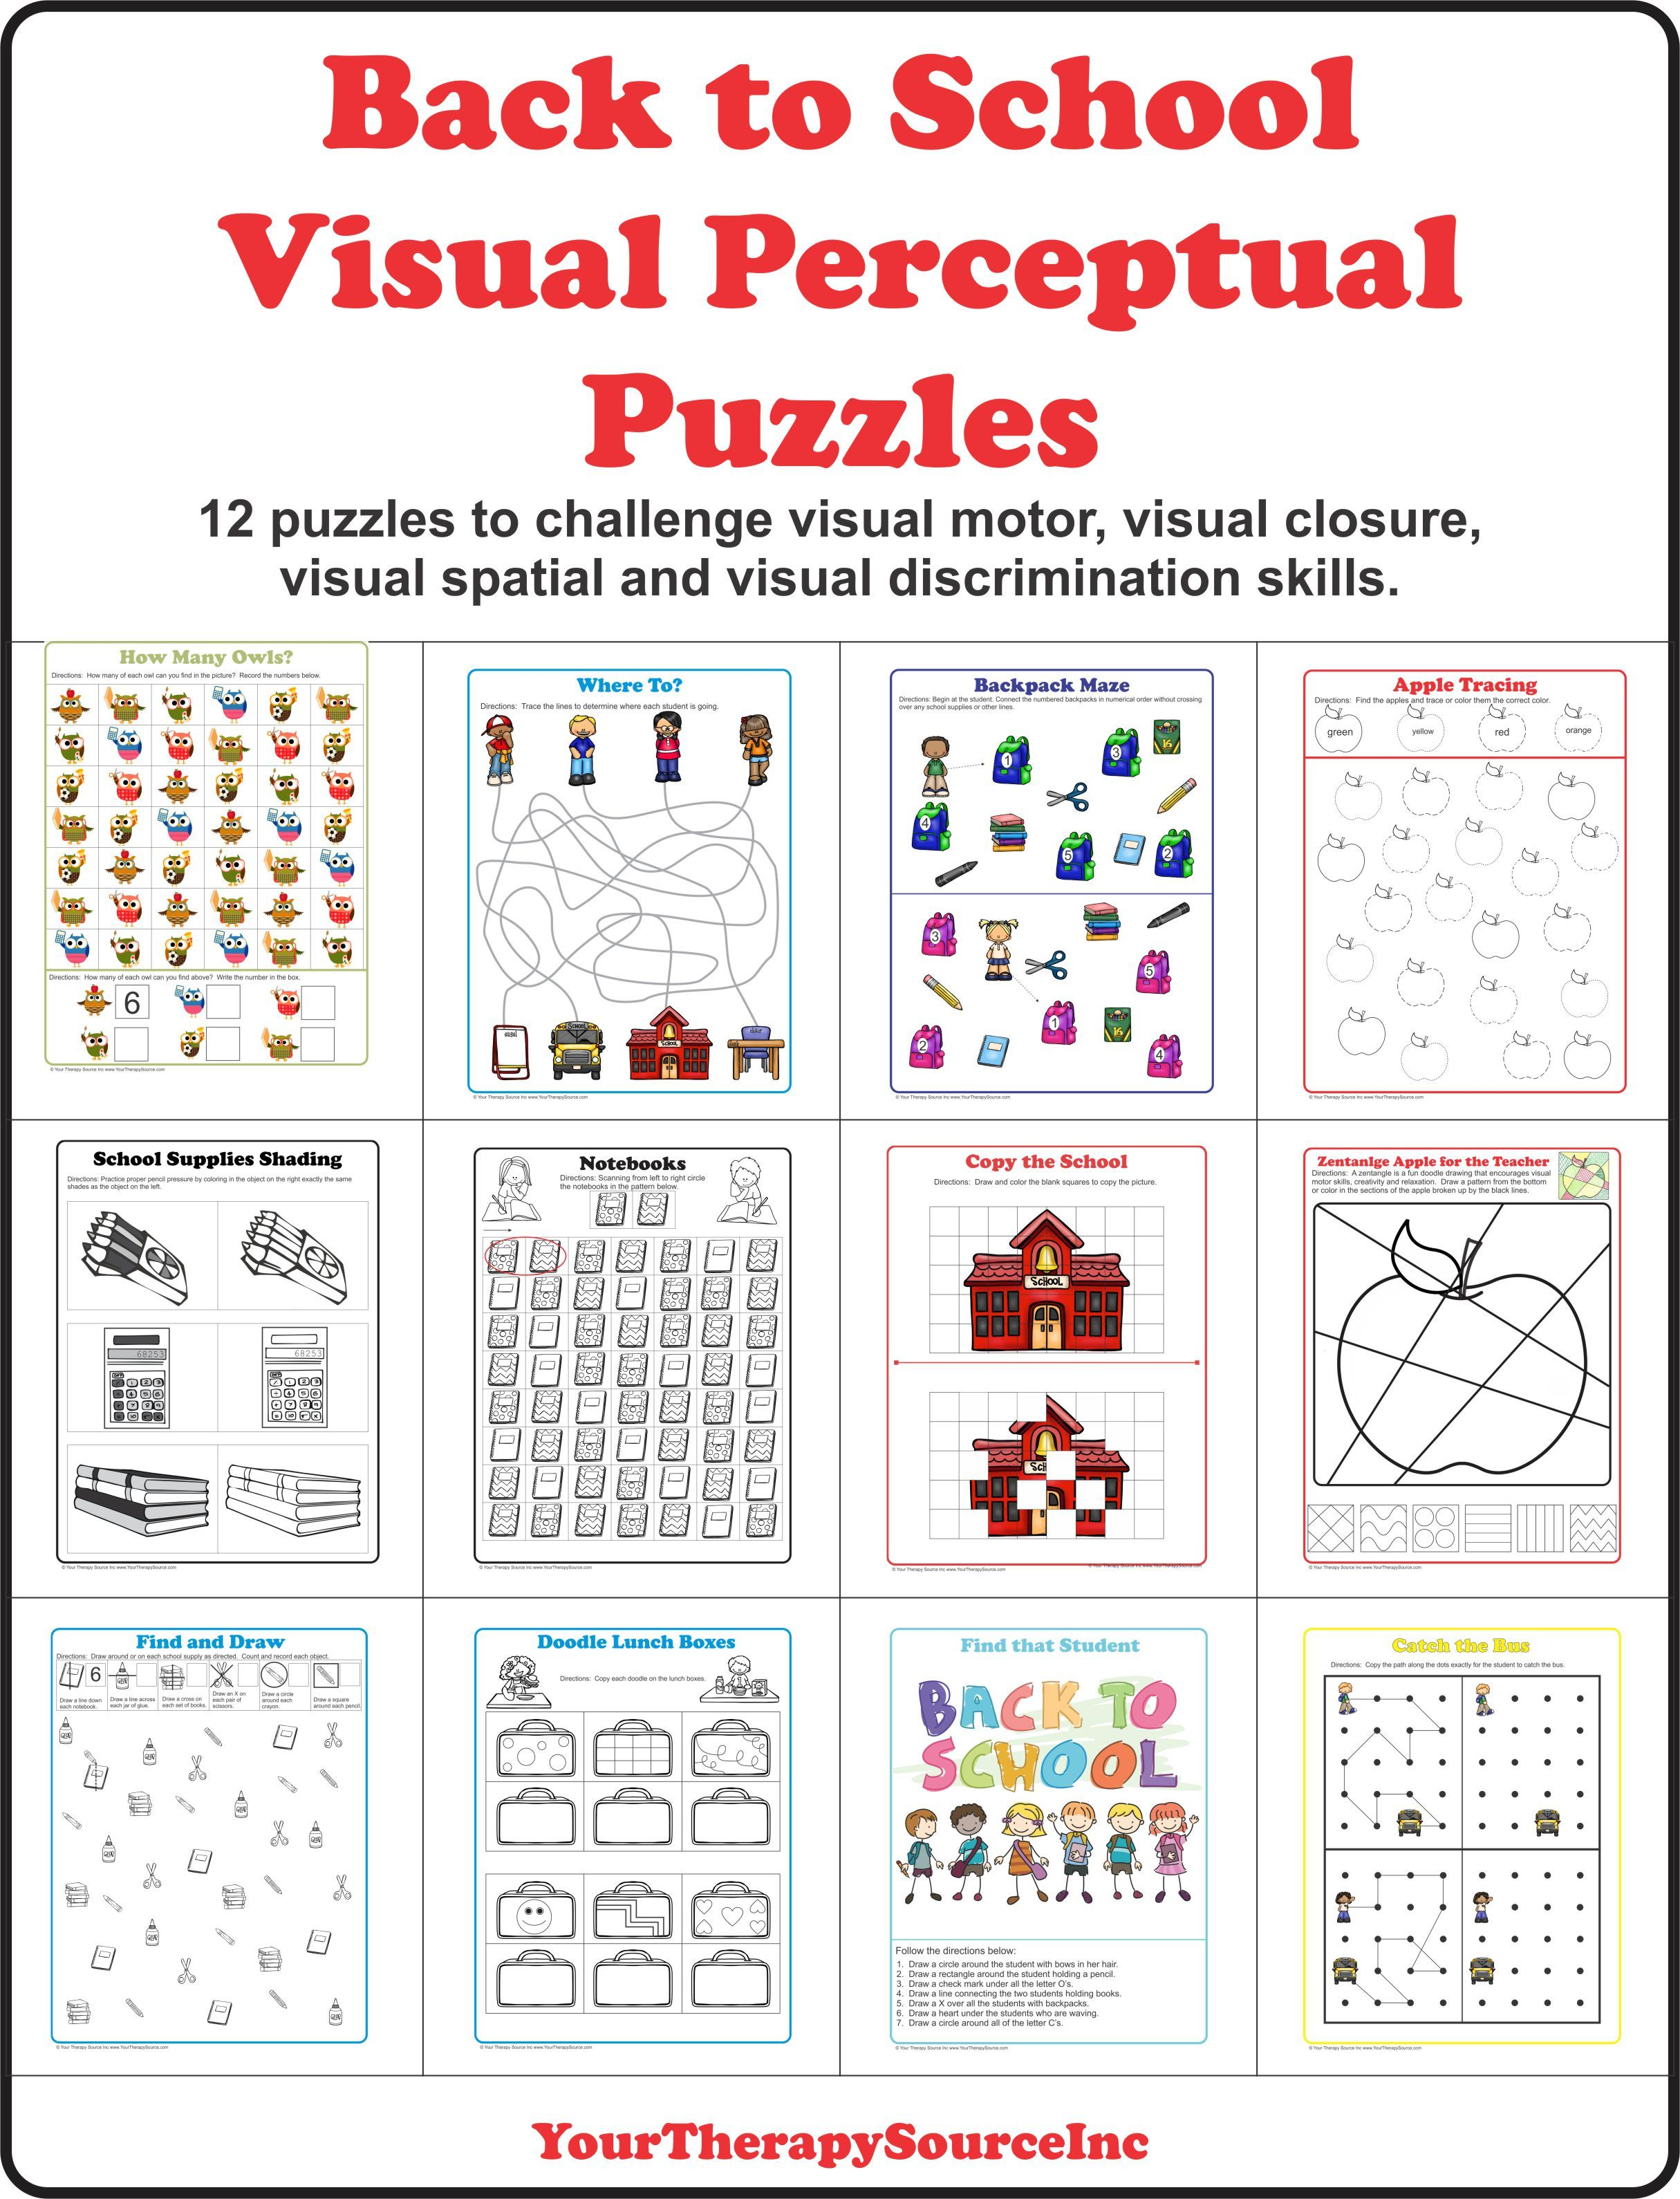 12 Visual Motor Visual Spatial Visual Closure And Visual Perceptual Challenges With A Back To